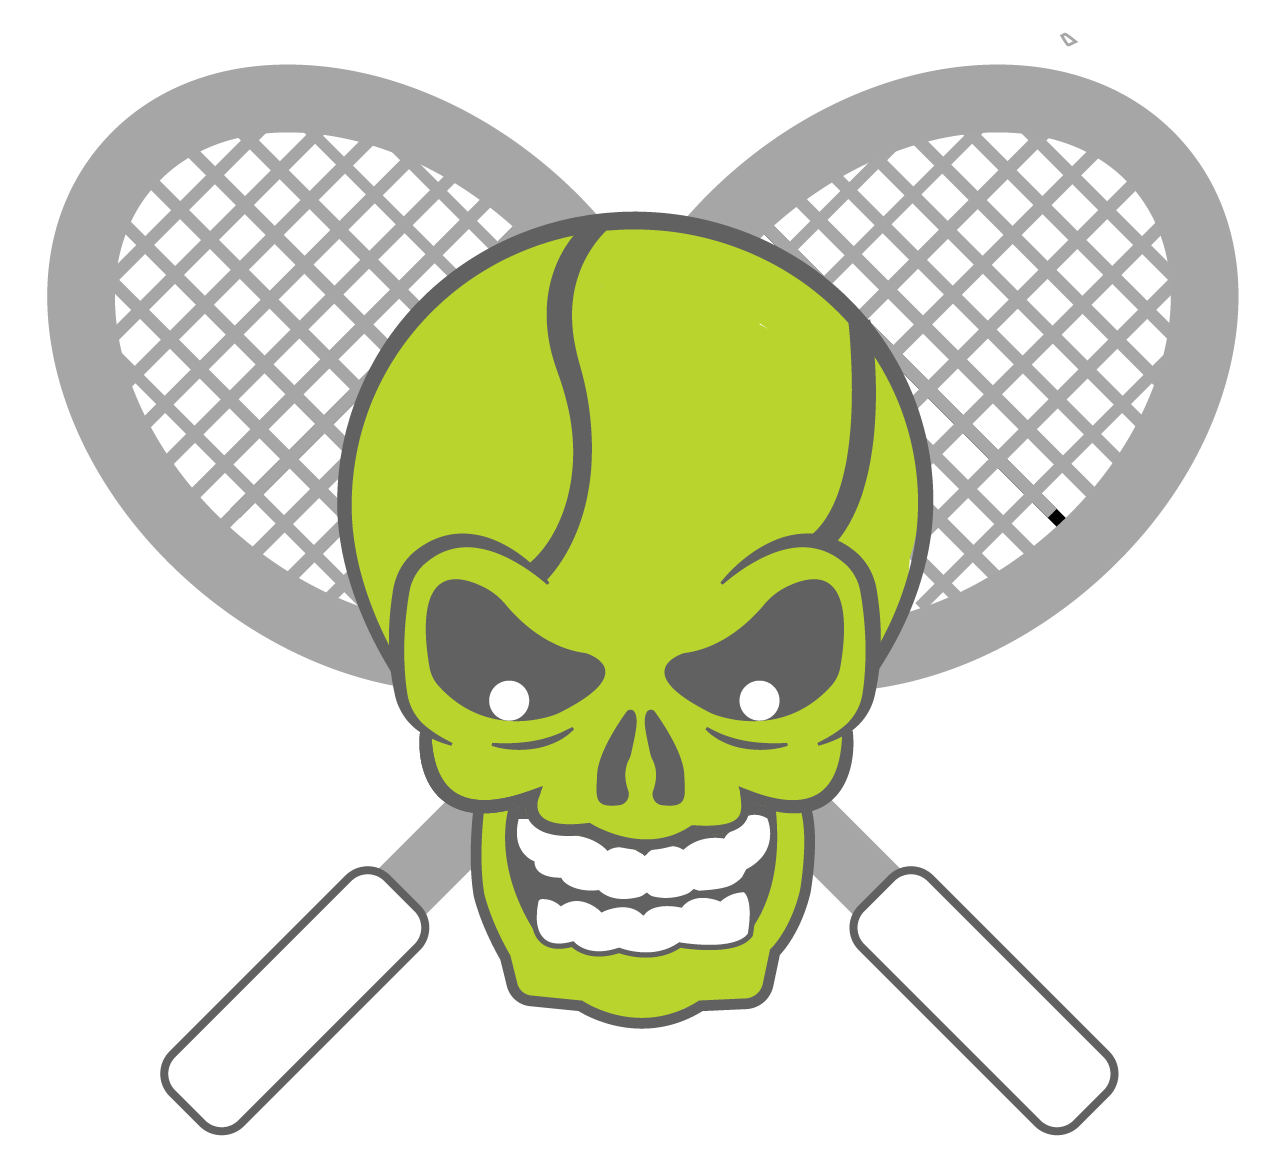 Tough Tennis Academy